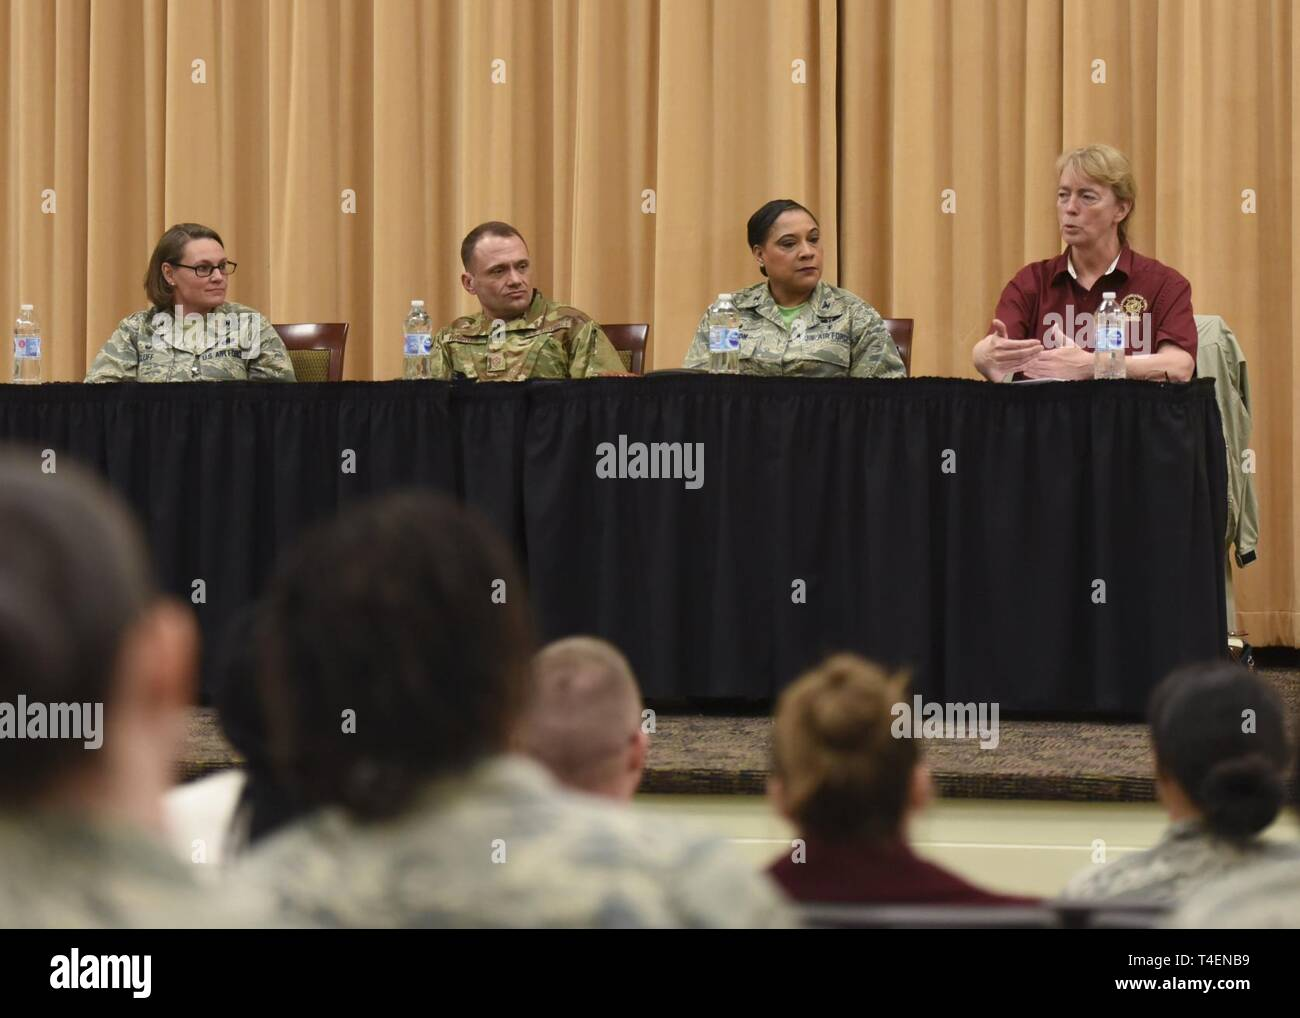 Key leaders discuss diversity and inclusion during a Women's History Month panel at Joint Base Langley-Eustis, Virginia, March 22, 2019. This year's theme, Visionary Women: Champions of Peace and Nonviolence, was celebrated with interactive tours, lectures and this discussion panel. - Stock Image